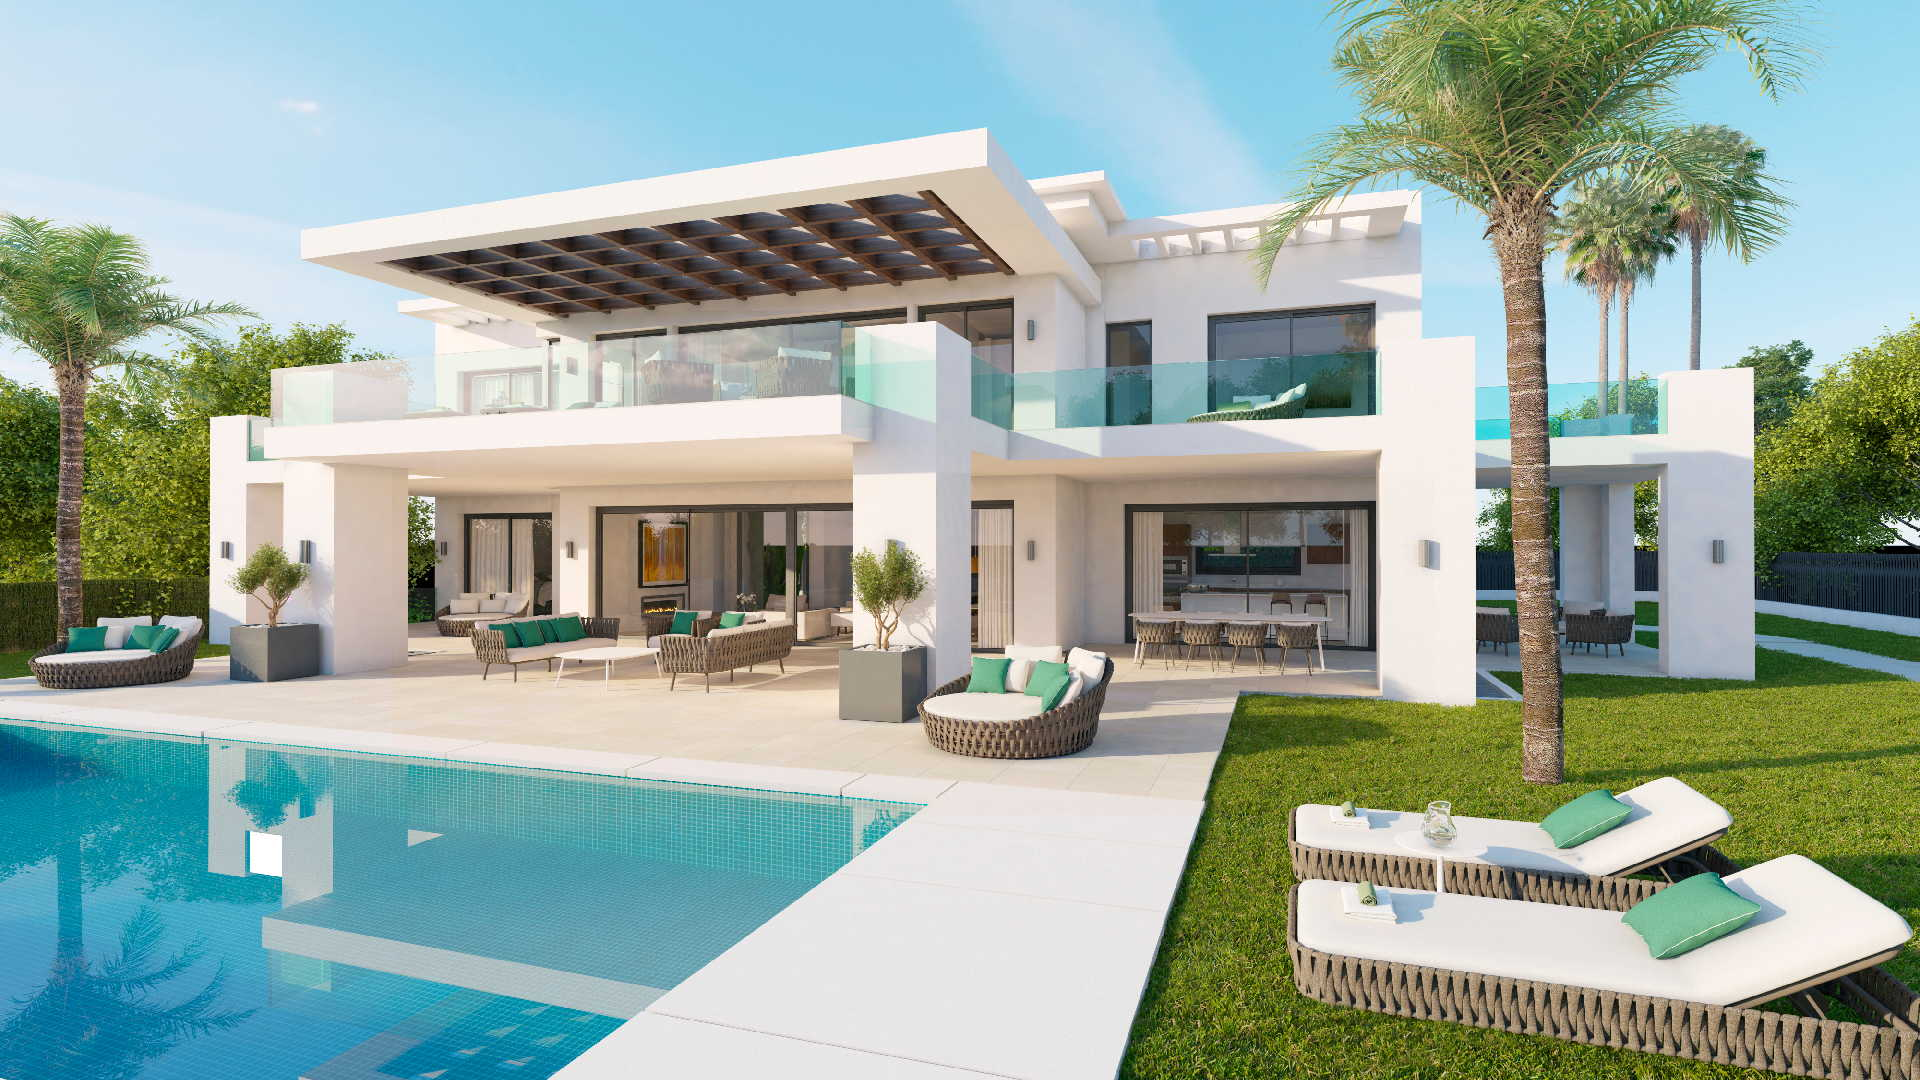 New villa in los olivos nueva andalucia marbella for sale for Plan des villas modernes